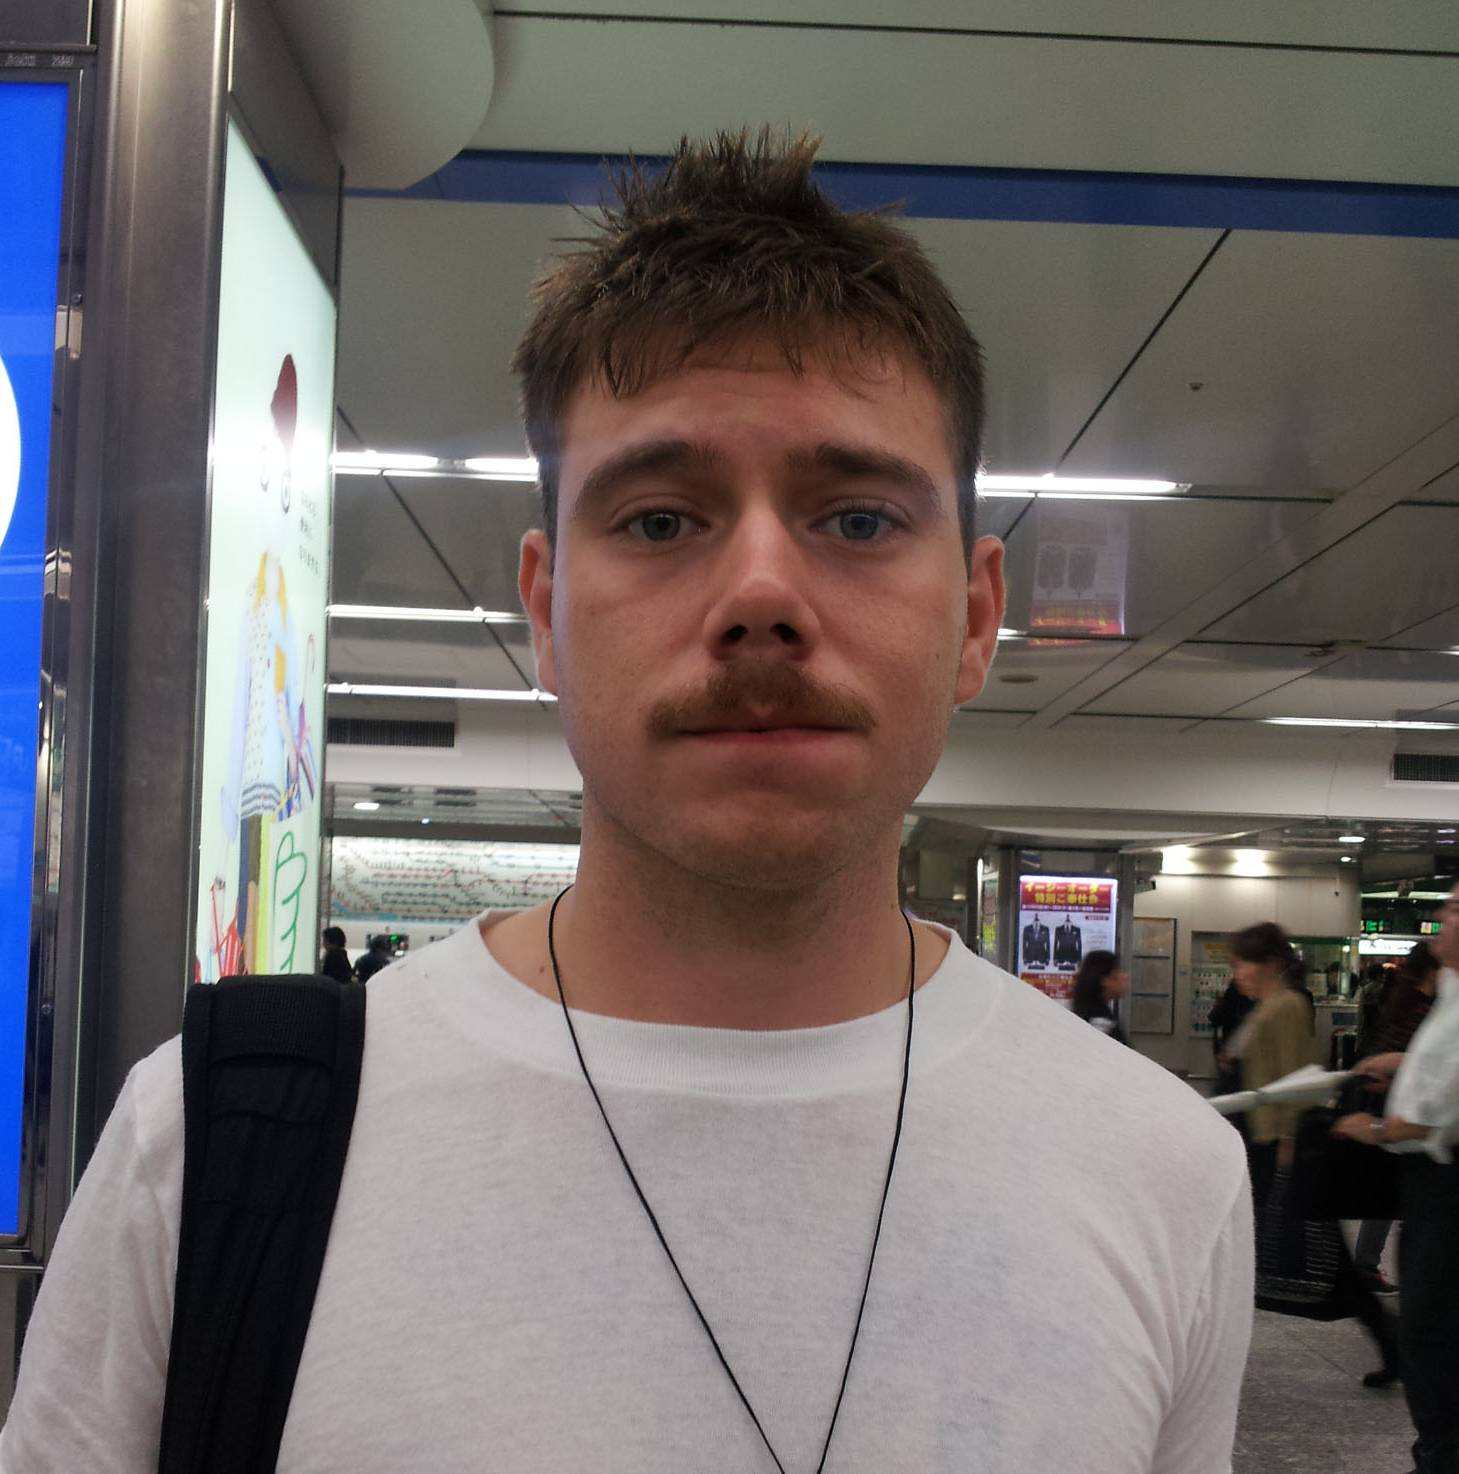 Robert J. Kelley, United States Navy, 22  (American): Foreigners aren't aware of  Japan's complicated recycling  policies. Better explanations  of that — as well as more trash  and recycling cans on the  street — would be a good  thing, I think.